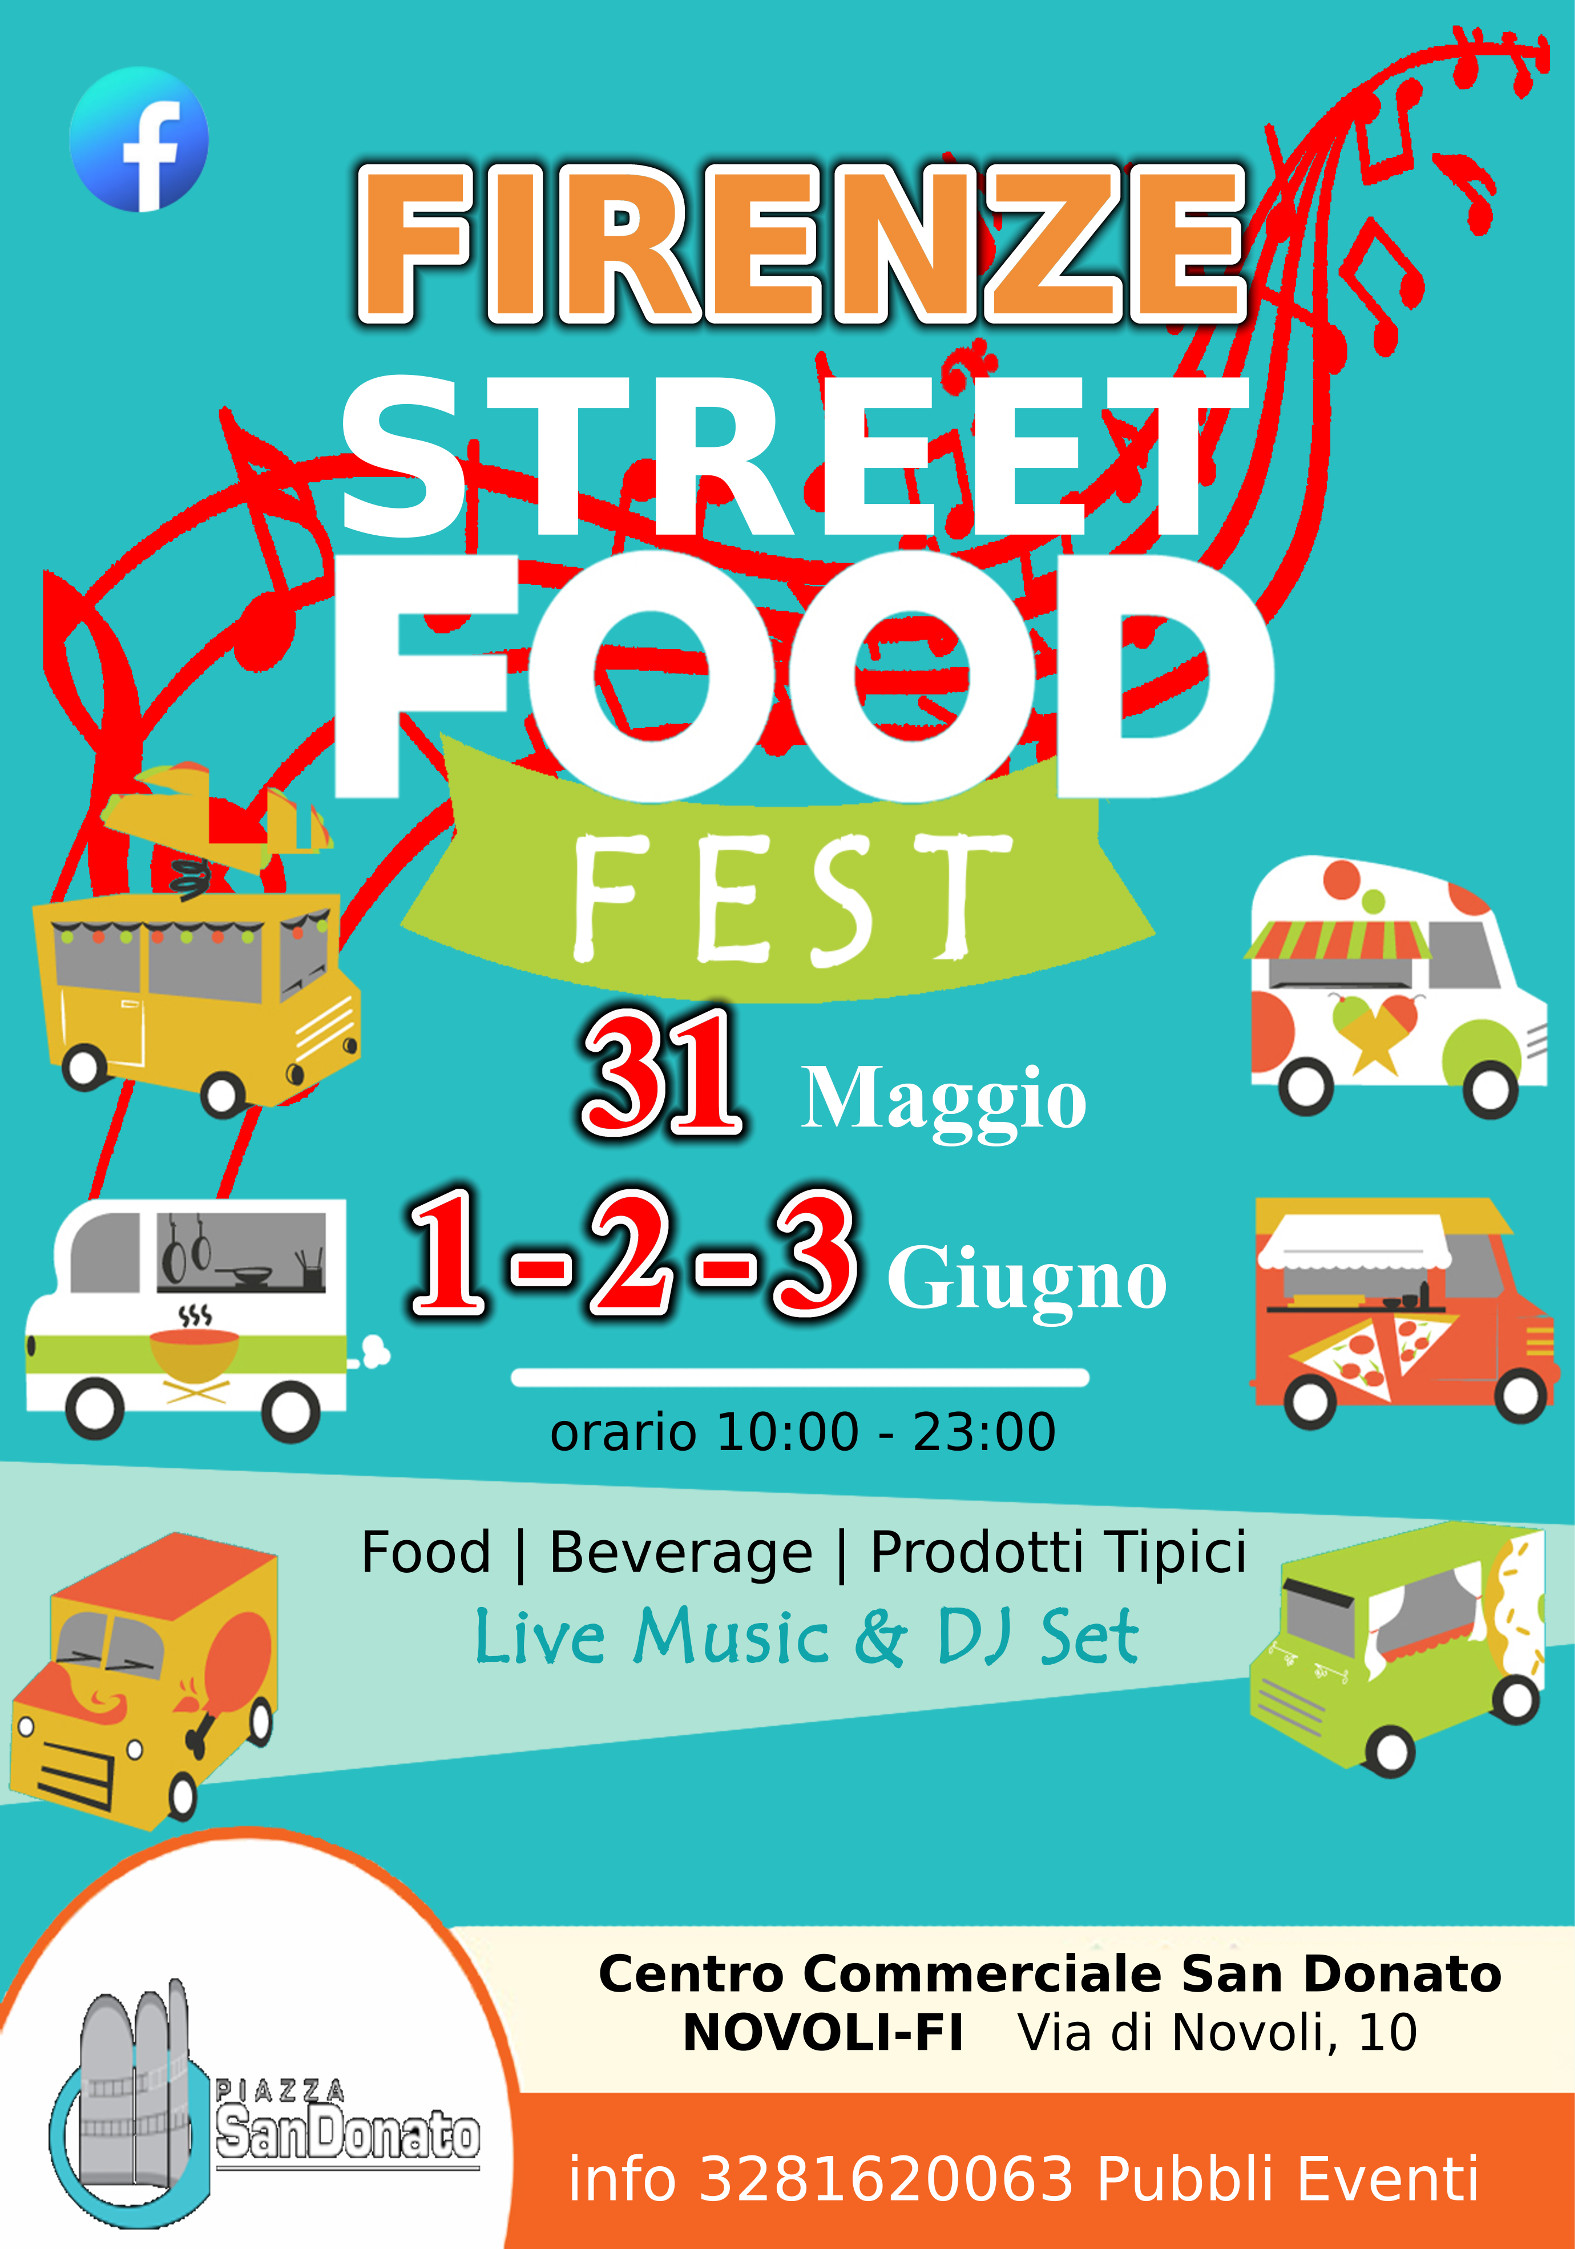 firenze-steeet-food-fest-small